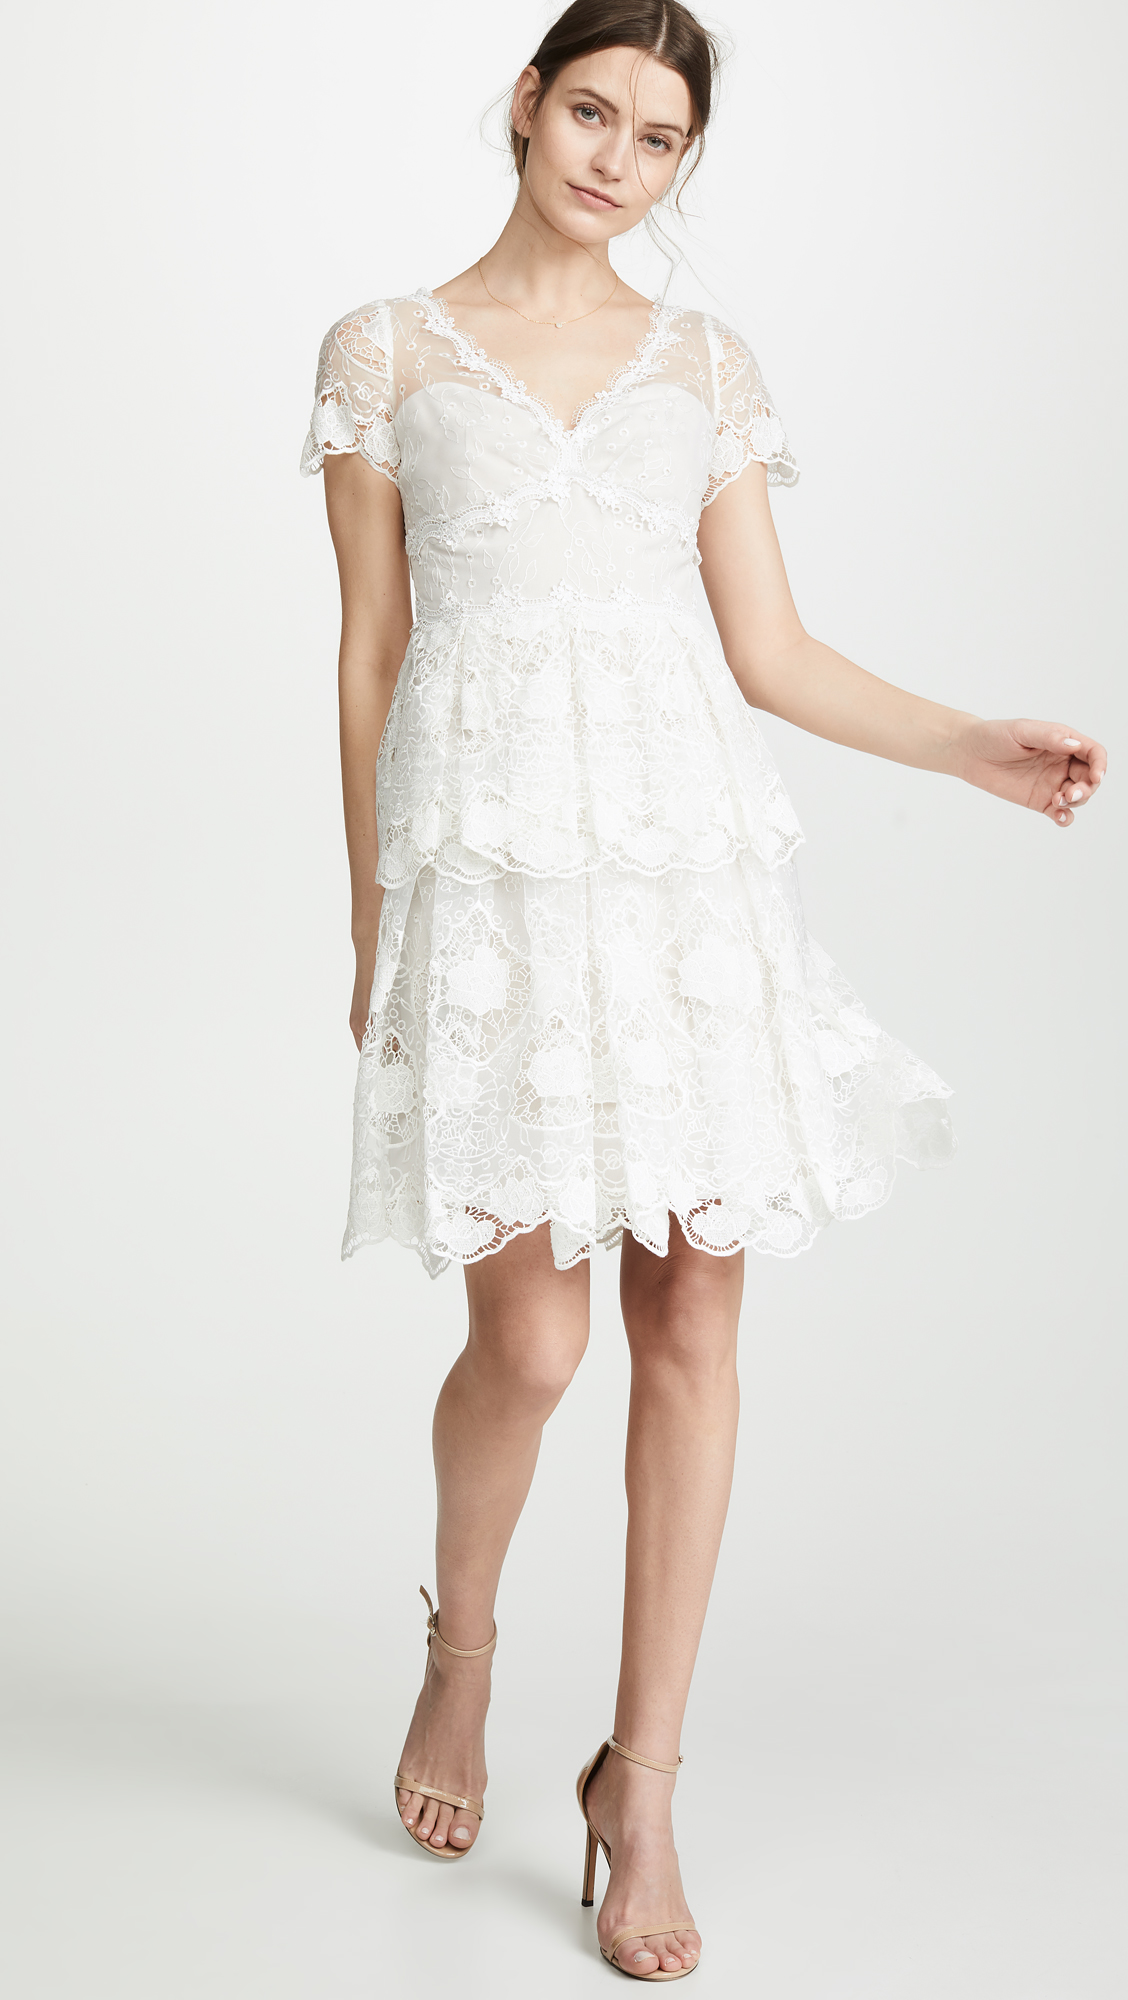 c6c19549 Marchesa Notte Floral Eyelet Tiered Cocktail Dress | SHOPBOP